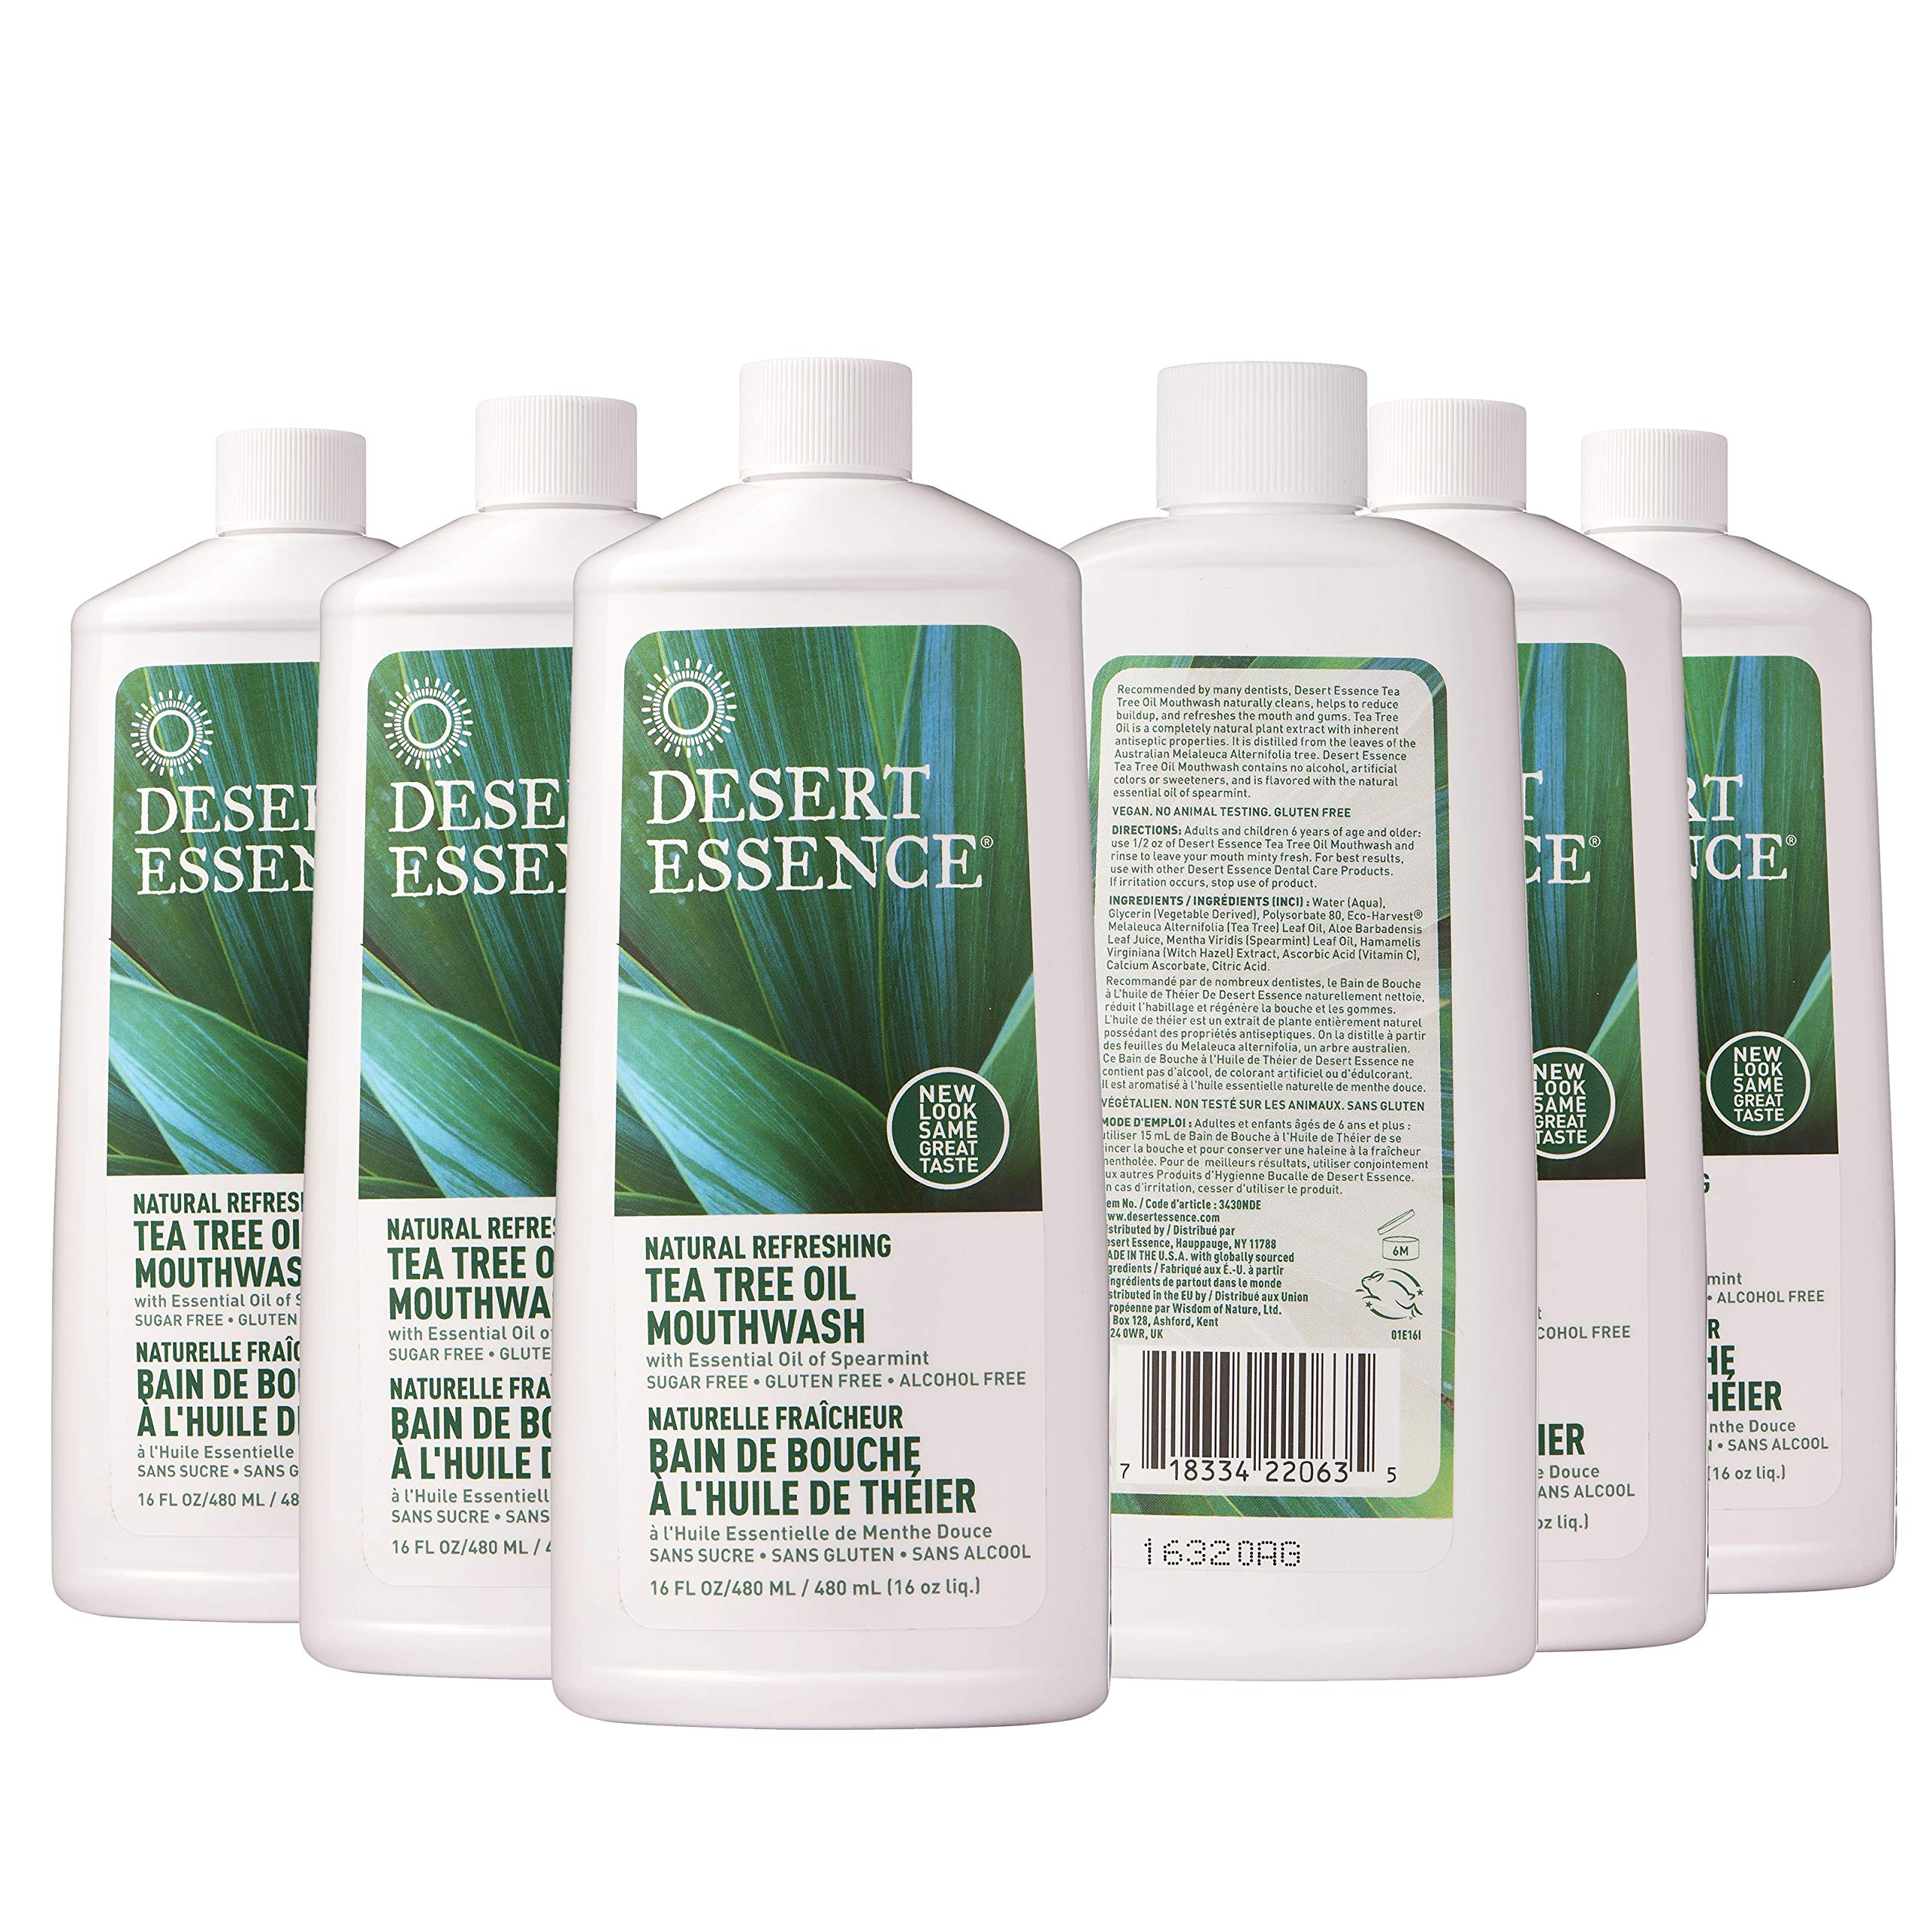 Natural Tea Tree Oil Mouthwash(6pk) - 16 fl oz